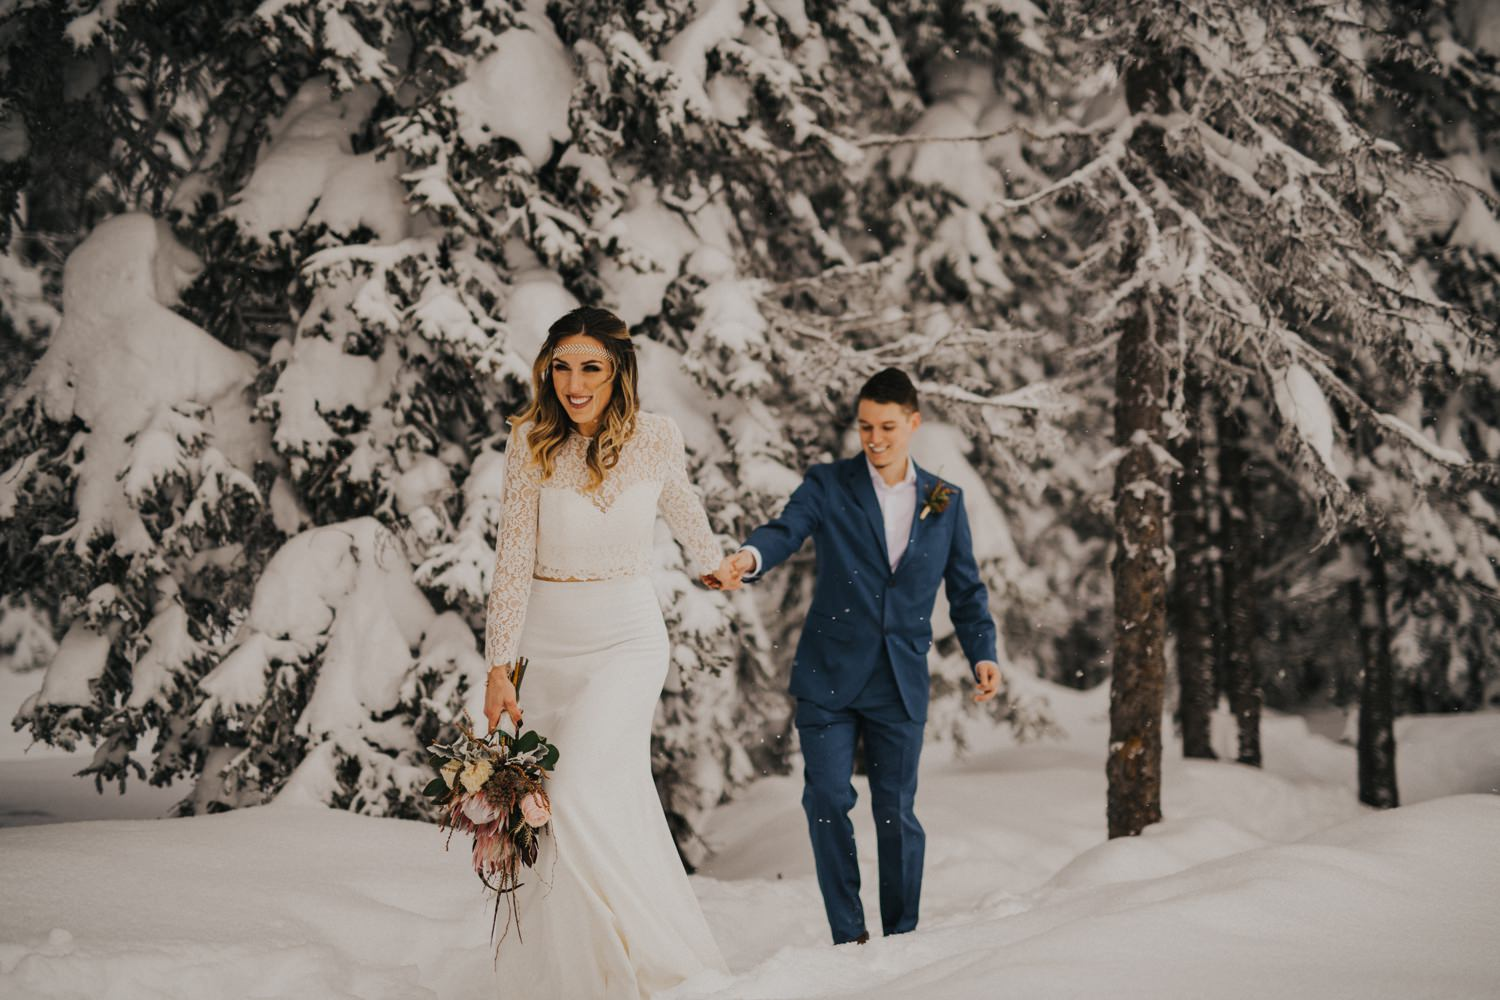 Okanagan Winter Elopement - Joelsview Photography_0009